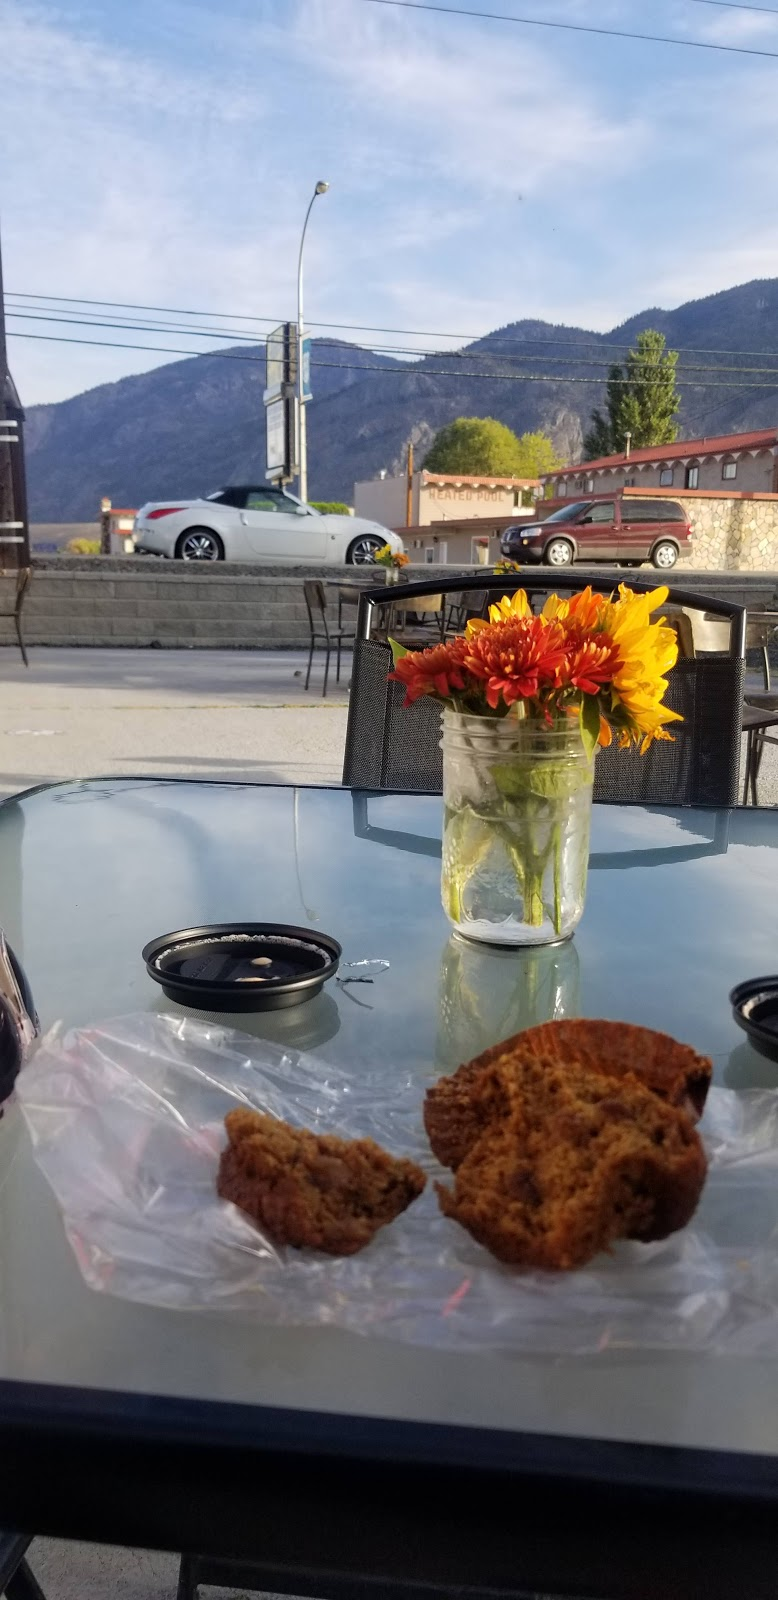 Junction 3 Brewery   cafe   7301 Main St, Osoyoos, BC V0H 1V3, Canada   7788230199 OR +1 778-823-0199